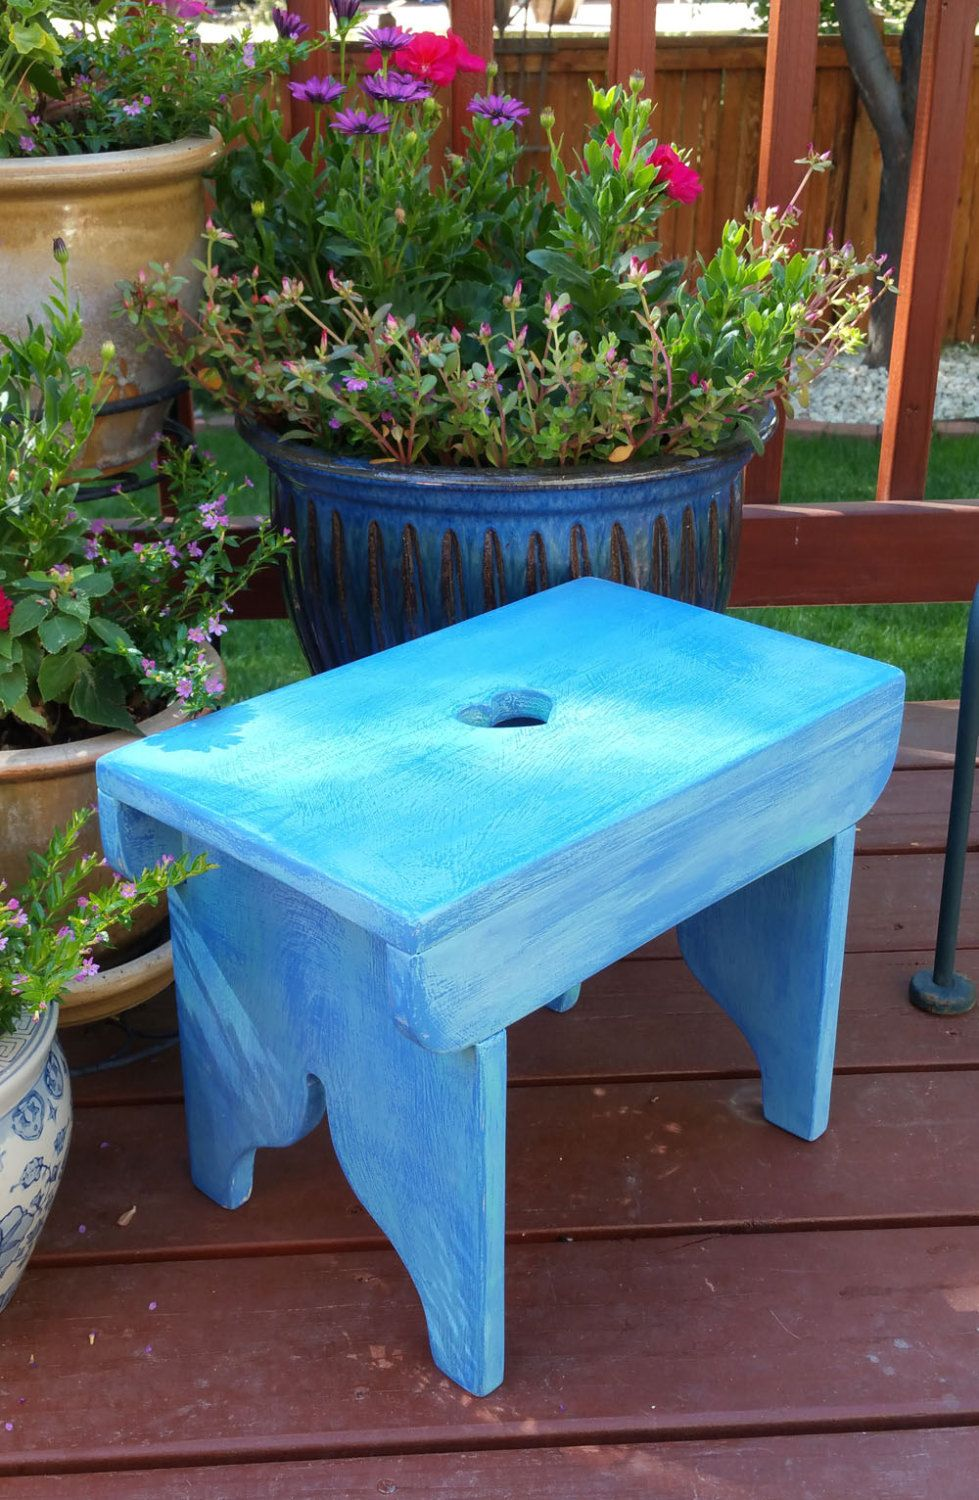 Family heirloom quality wooden step stool with well worn antique ...